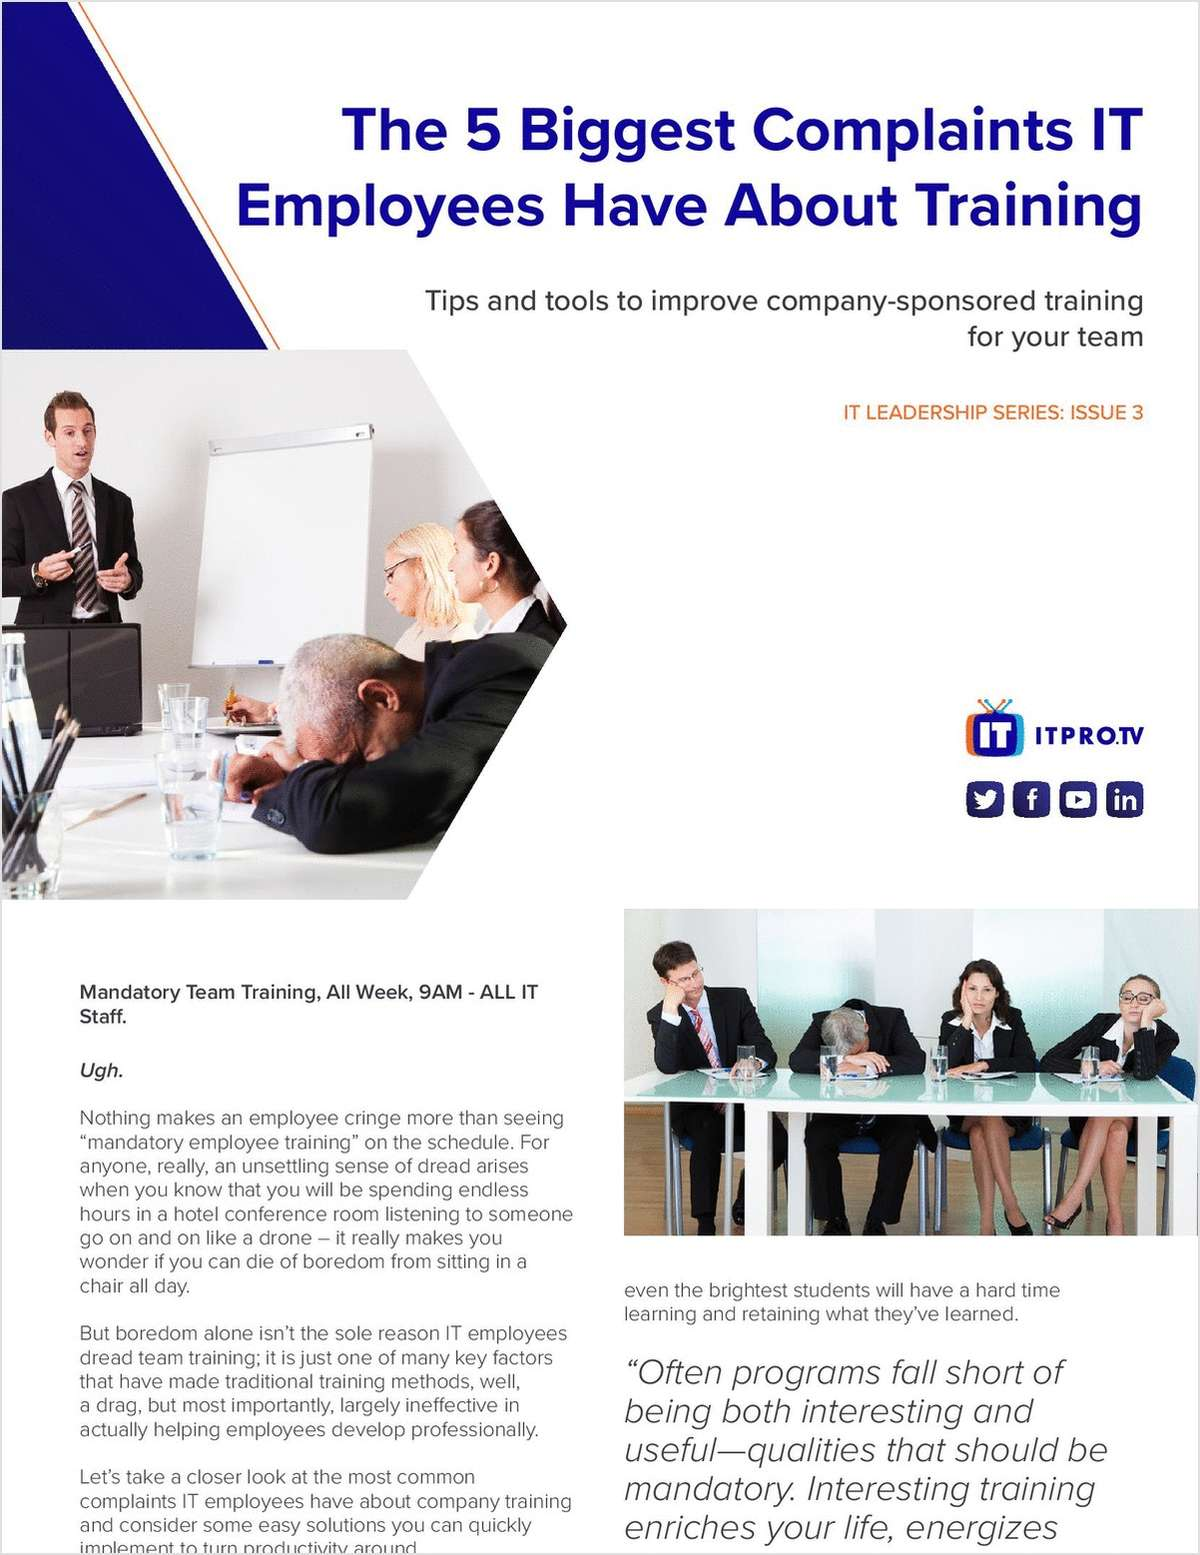 The 5 Biggest Complaints Employees Have About Training: Tips and Tools to Improve Company-sponsored Training for Your Team